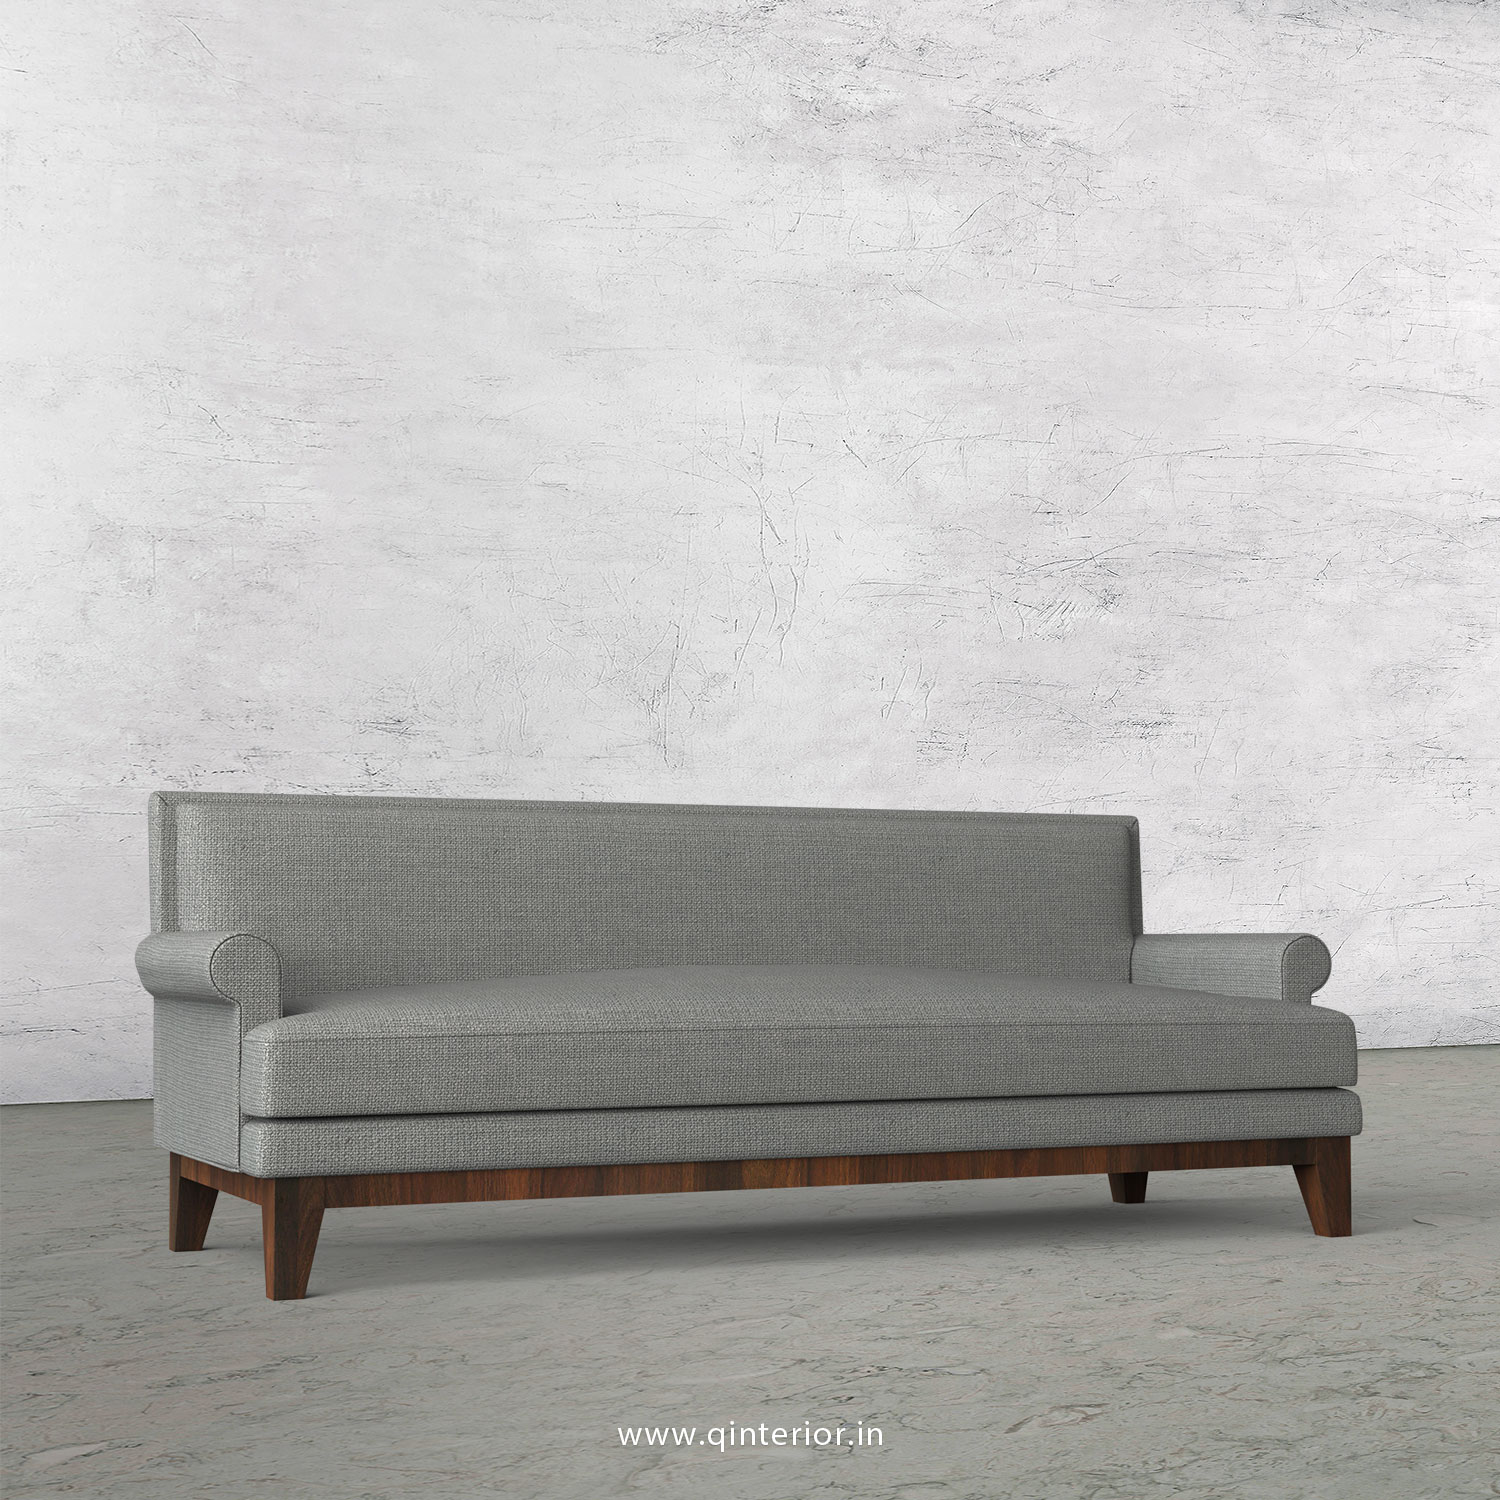 Aviana 3 Seater Sofa in Marvello - SFA001 MV03